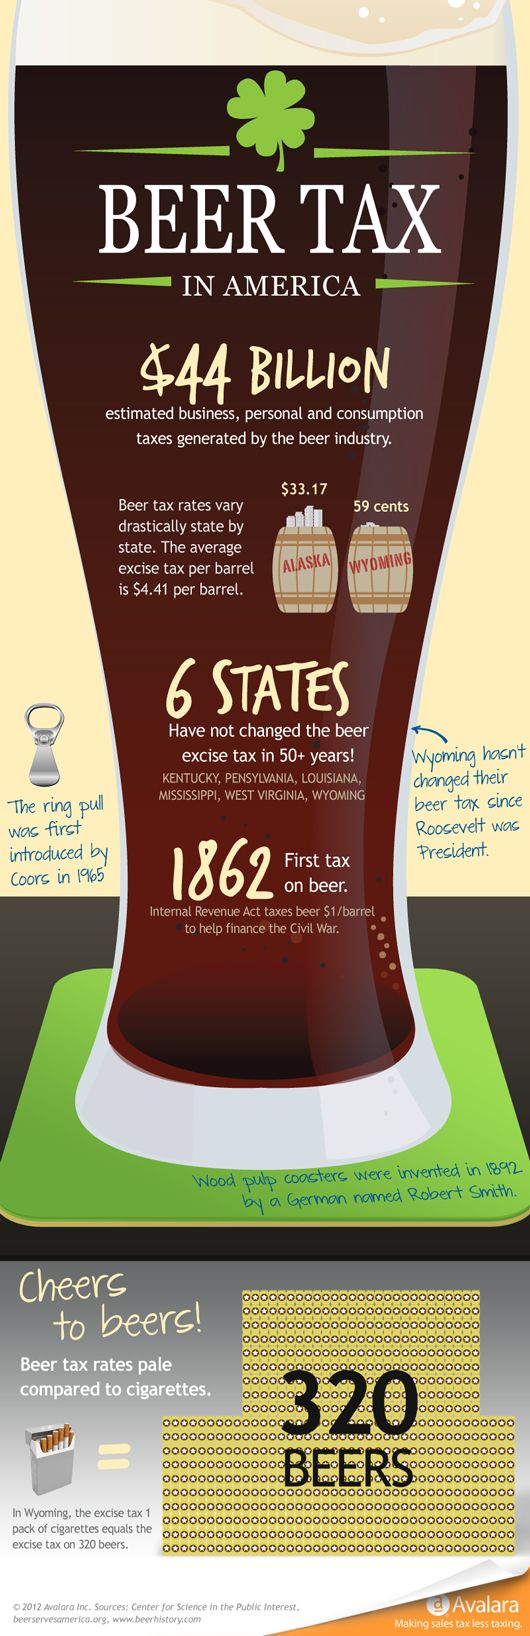 Sweetwater purchases pyramid brewing equipment plans to build second - Impress Your Friends At Trivia Night With Some Little Known Facts On Beer Tax In America